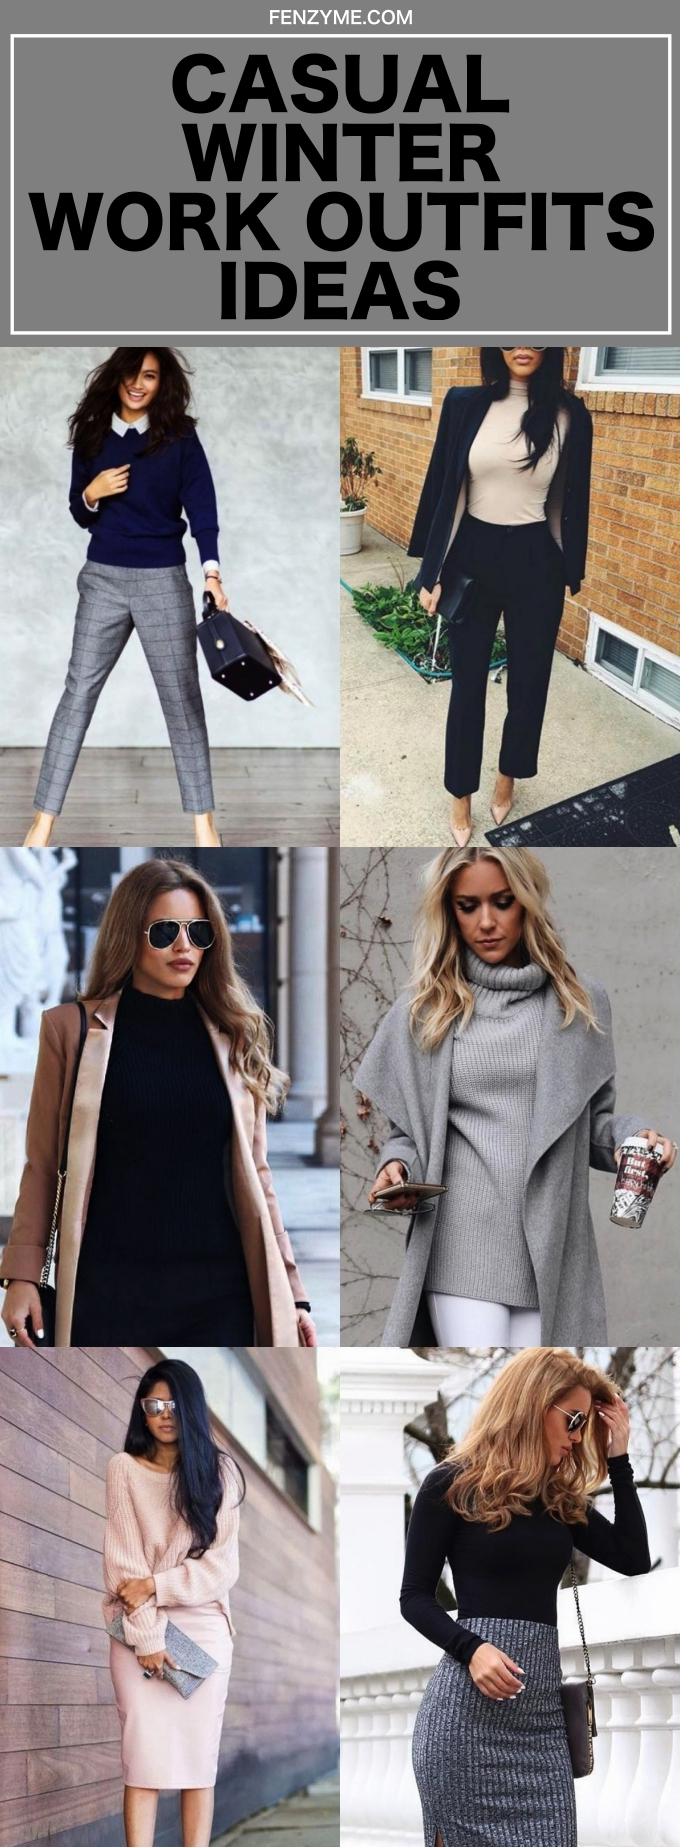 Casual Winter Work Outfits ideas